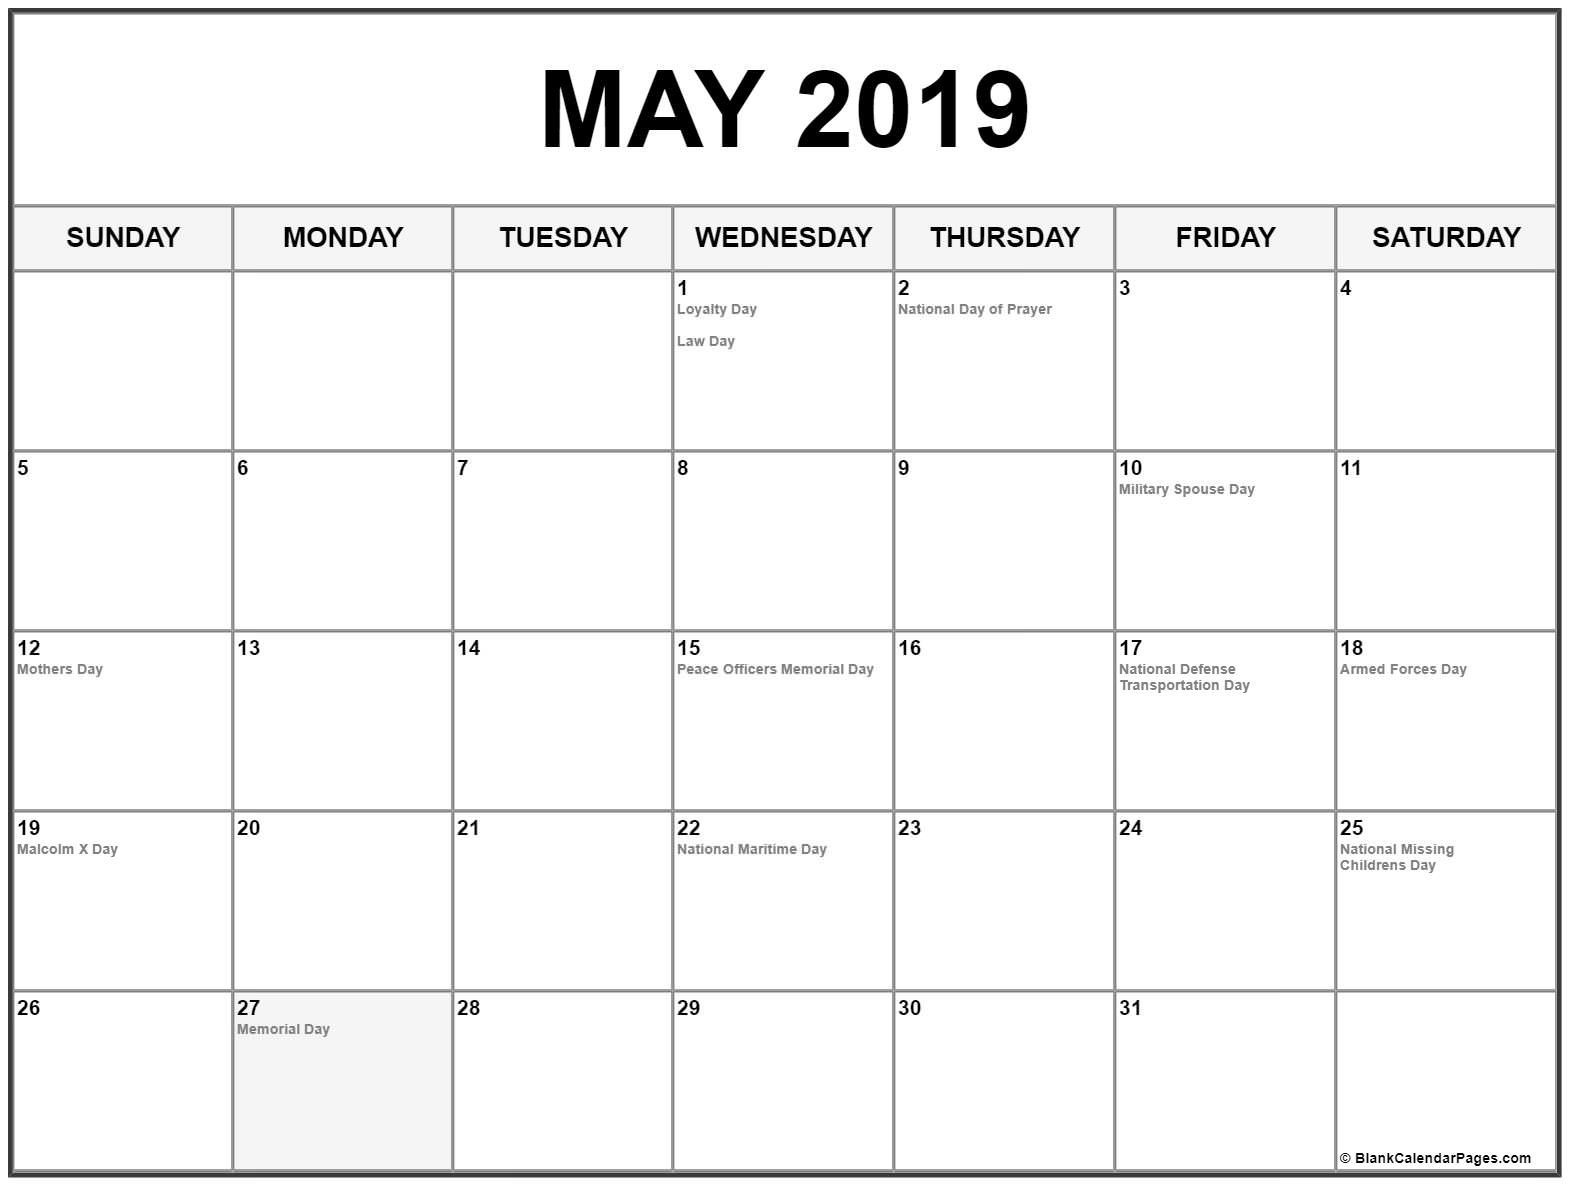 May 2019 Calendar Us Holidays | Printable Monthly Calendar Templates_Blank Calendar With Us Holidays